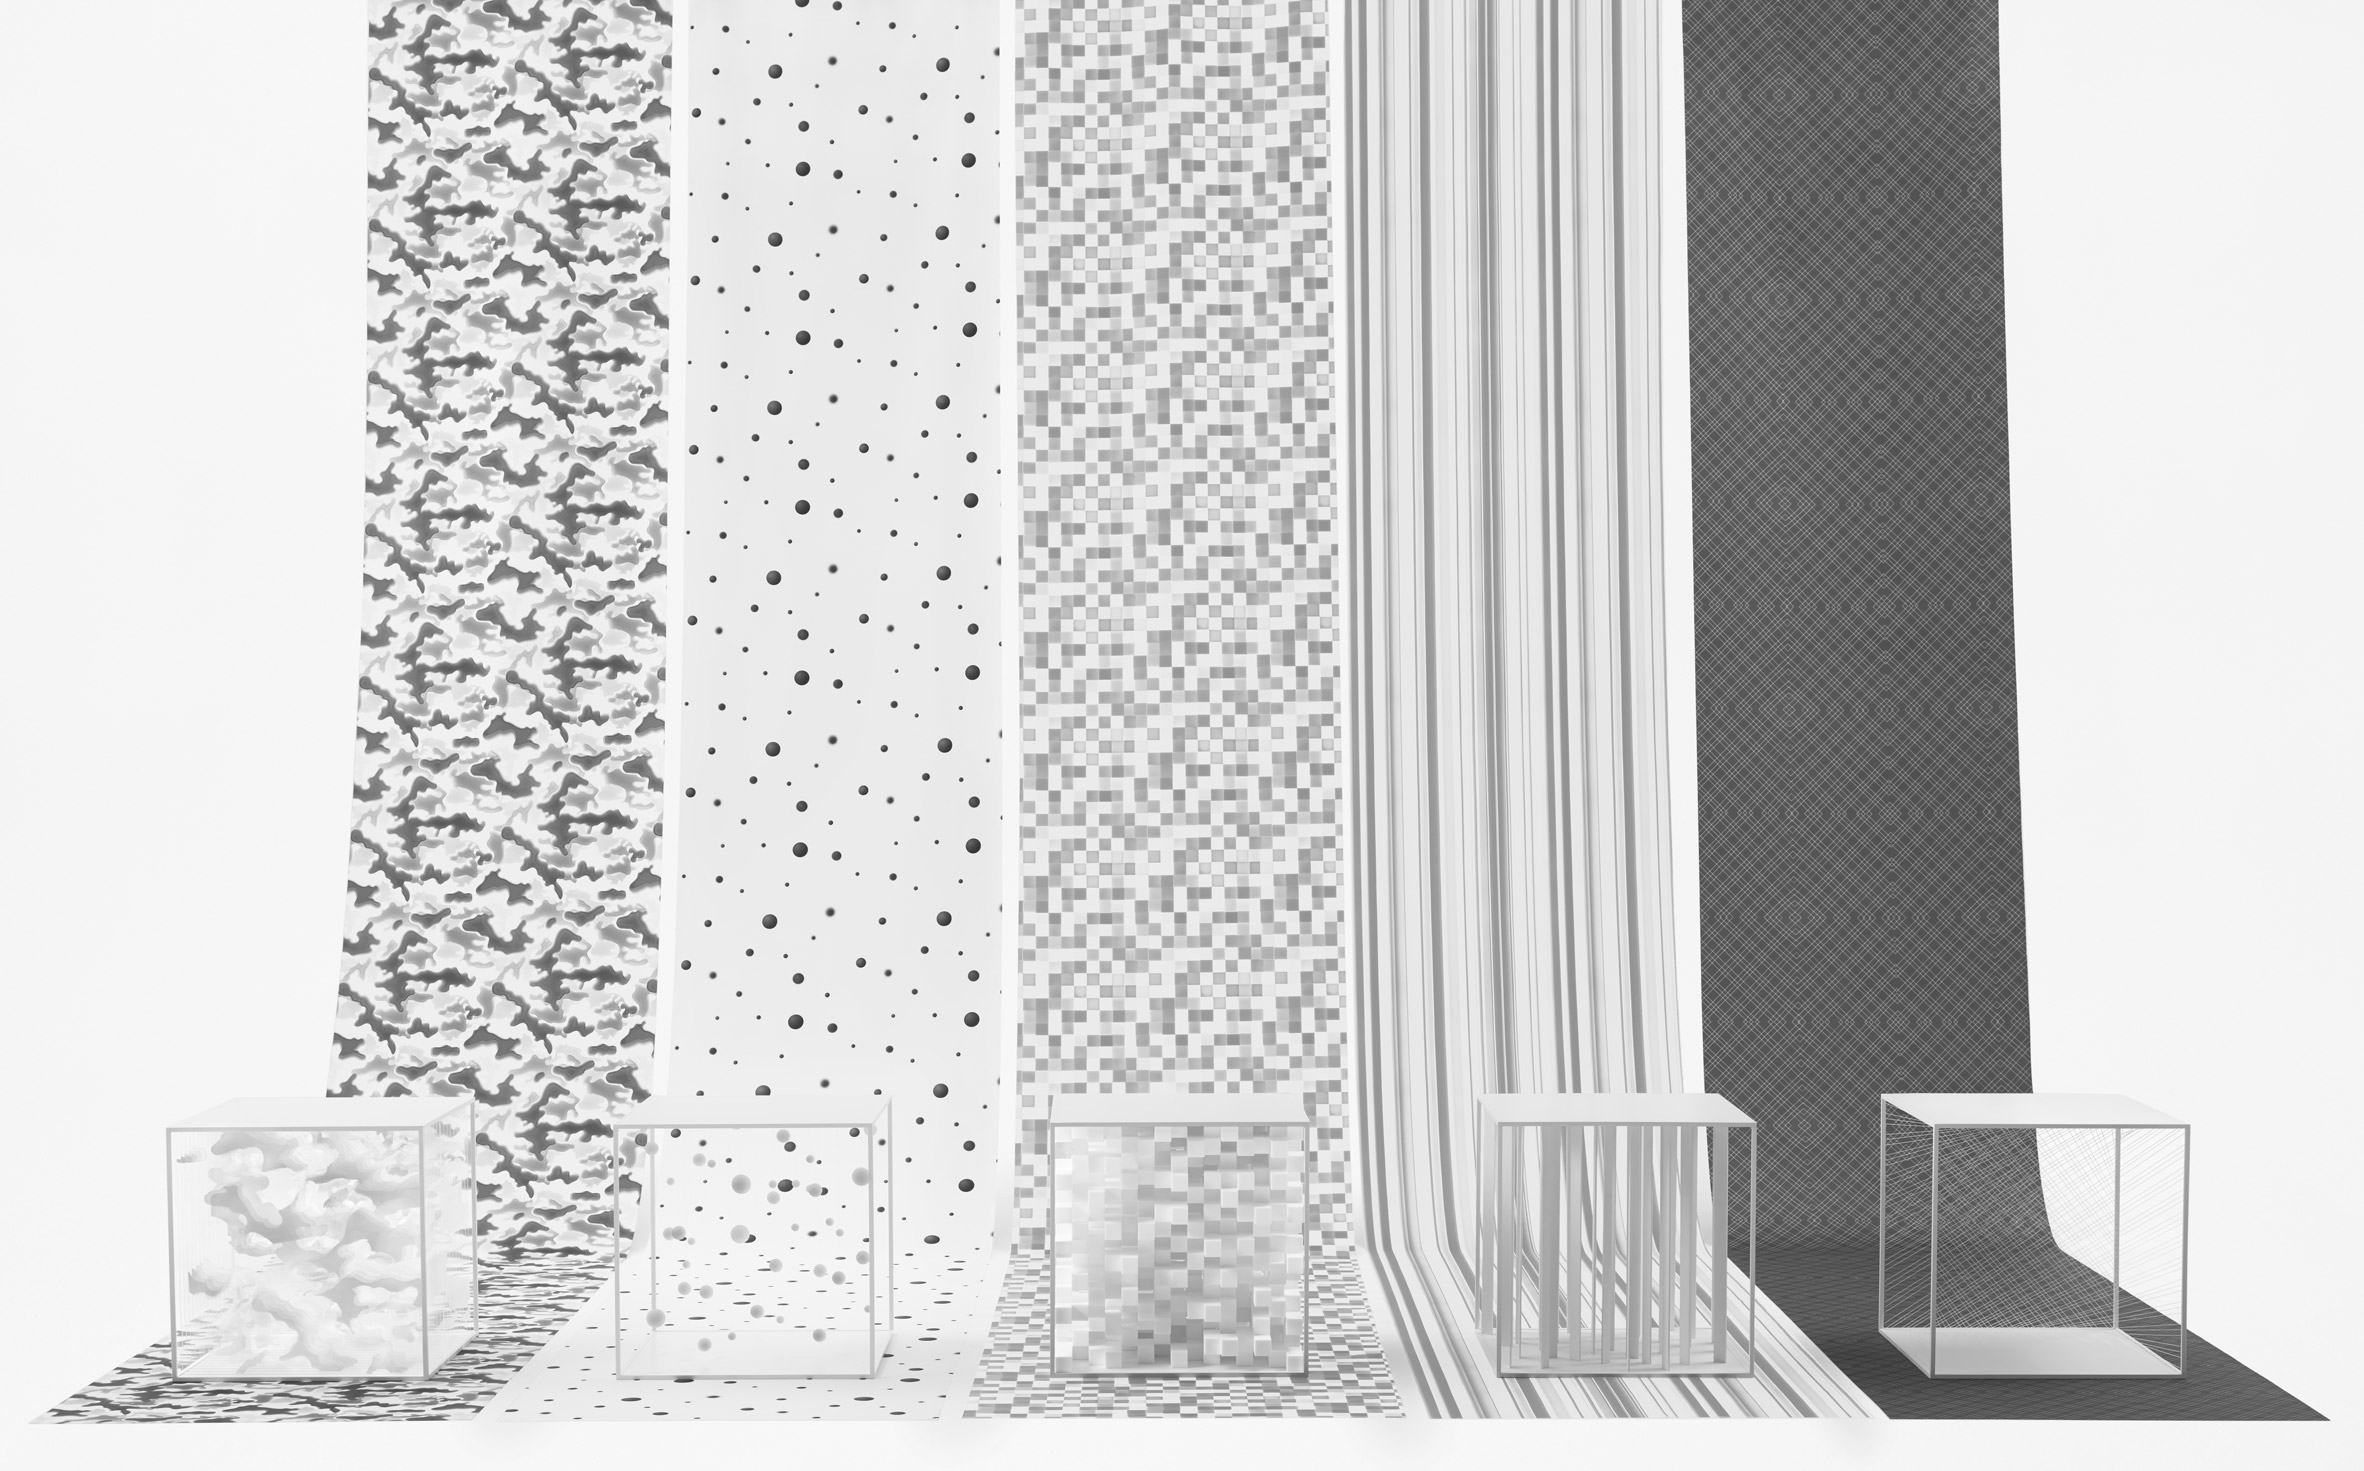 Nendo designs patterns for Jil Sander by photographing layered shapes